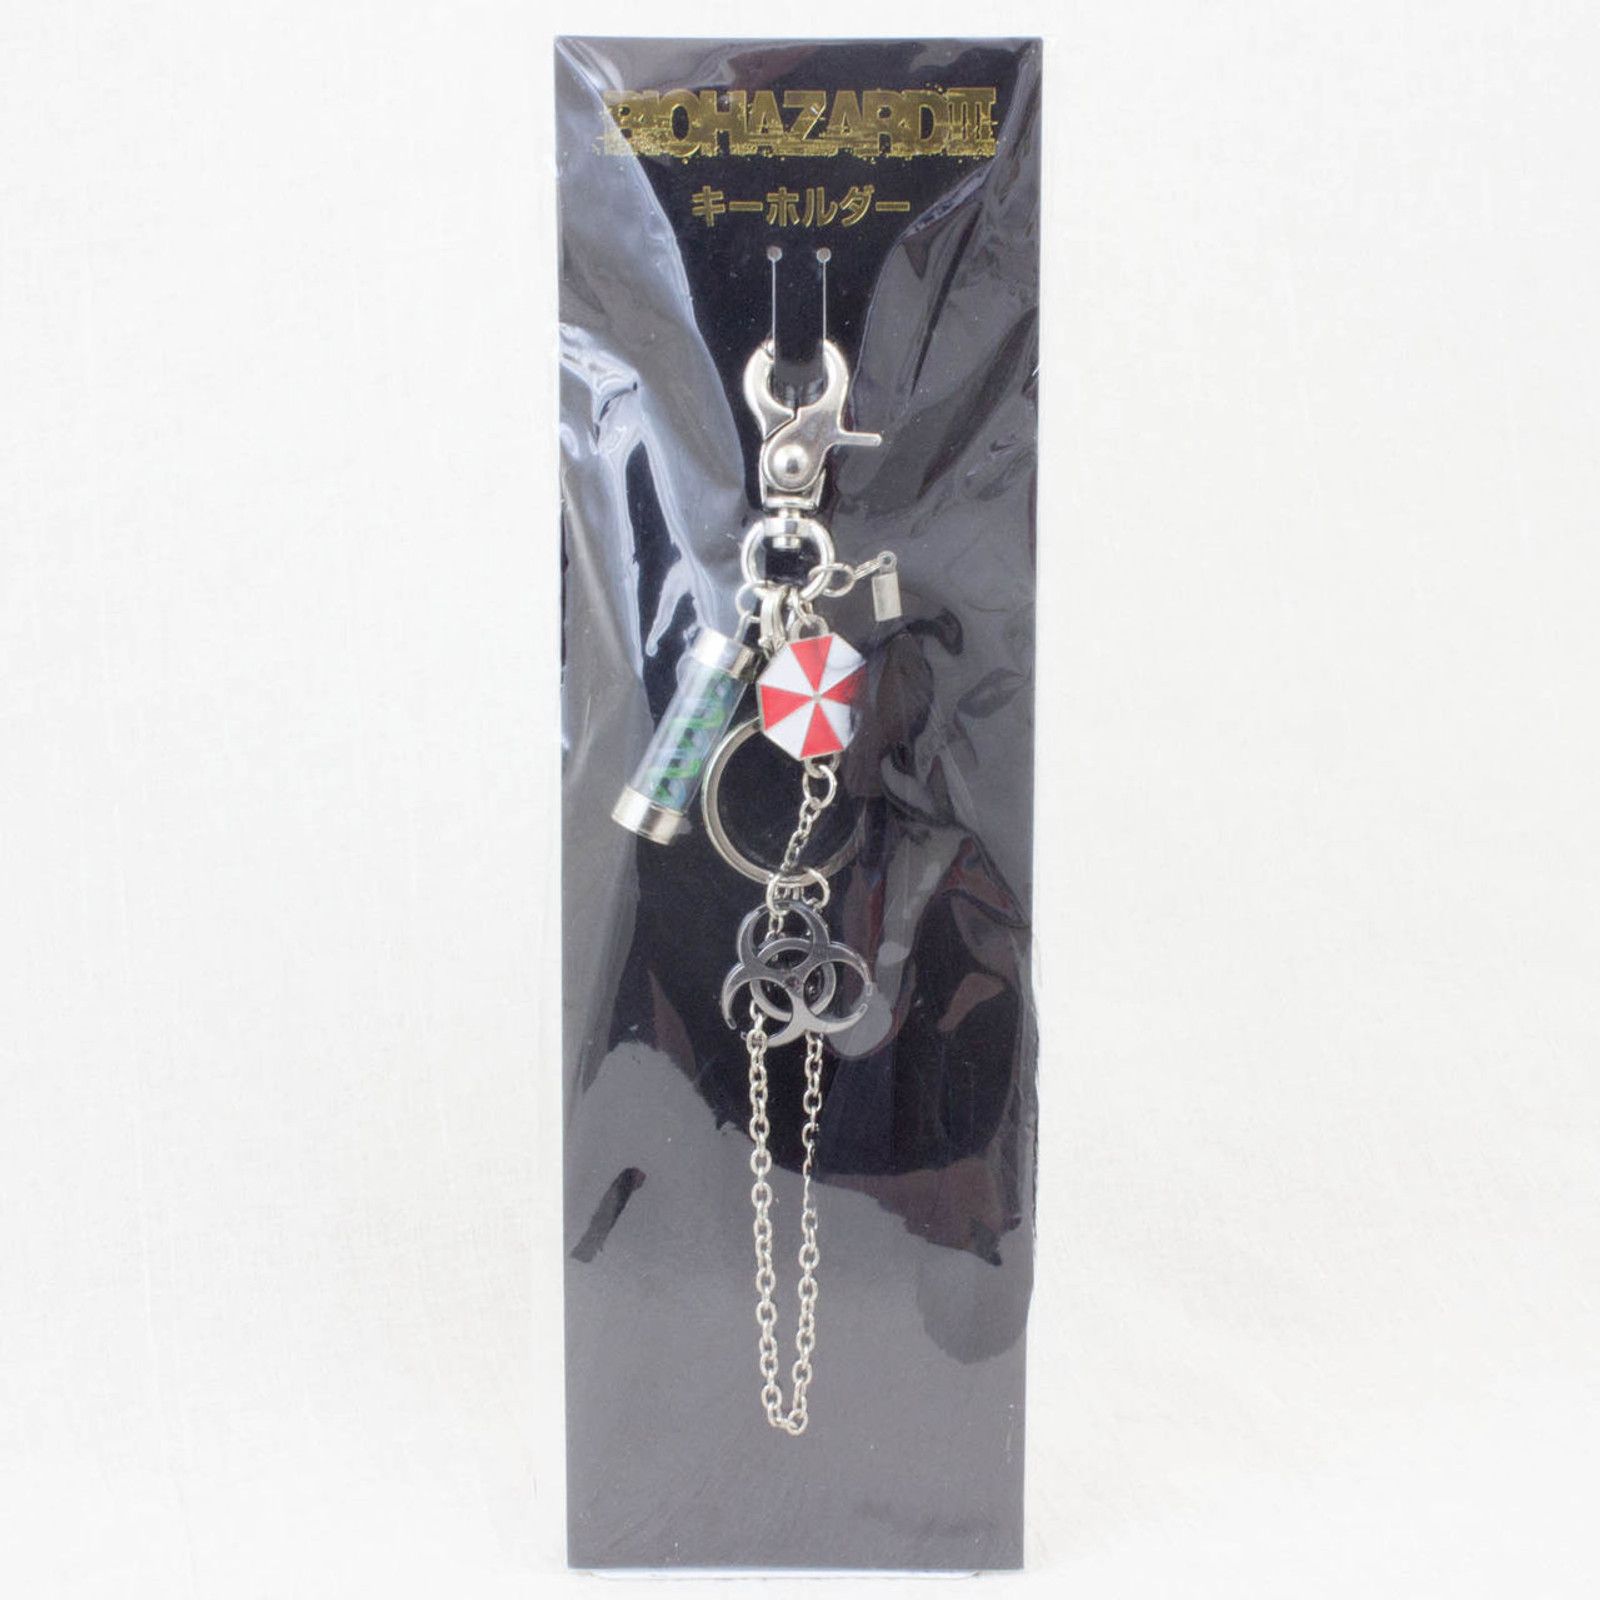 RESIDENT EVIL Biohazard 3 Umbrella T-Virus Mascot Key Chain Theater Limited JAPAN